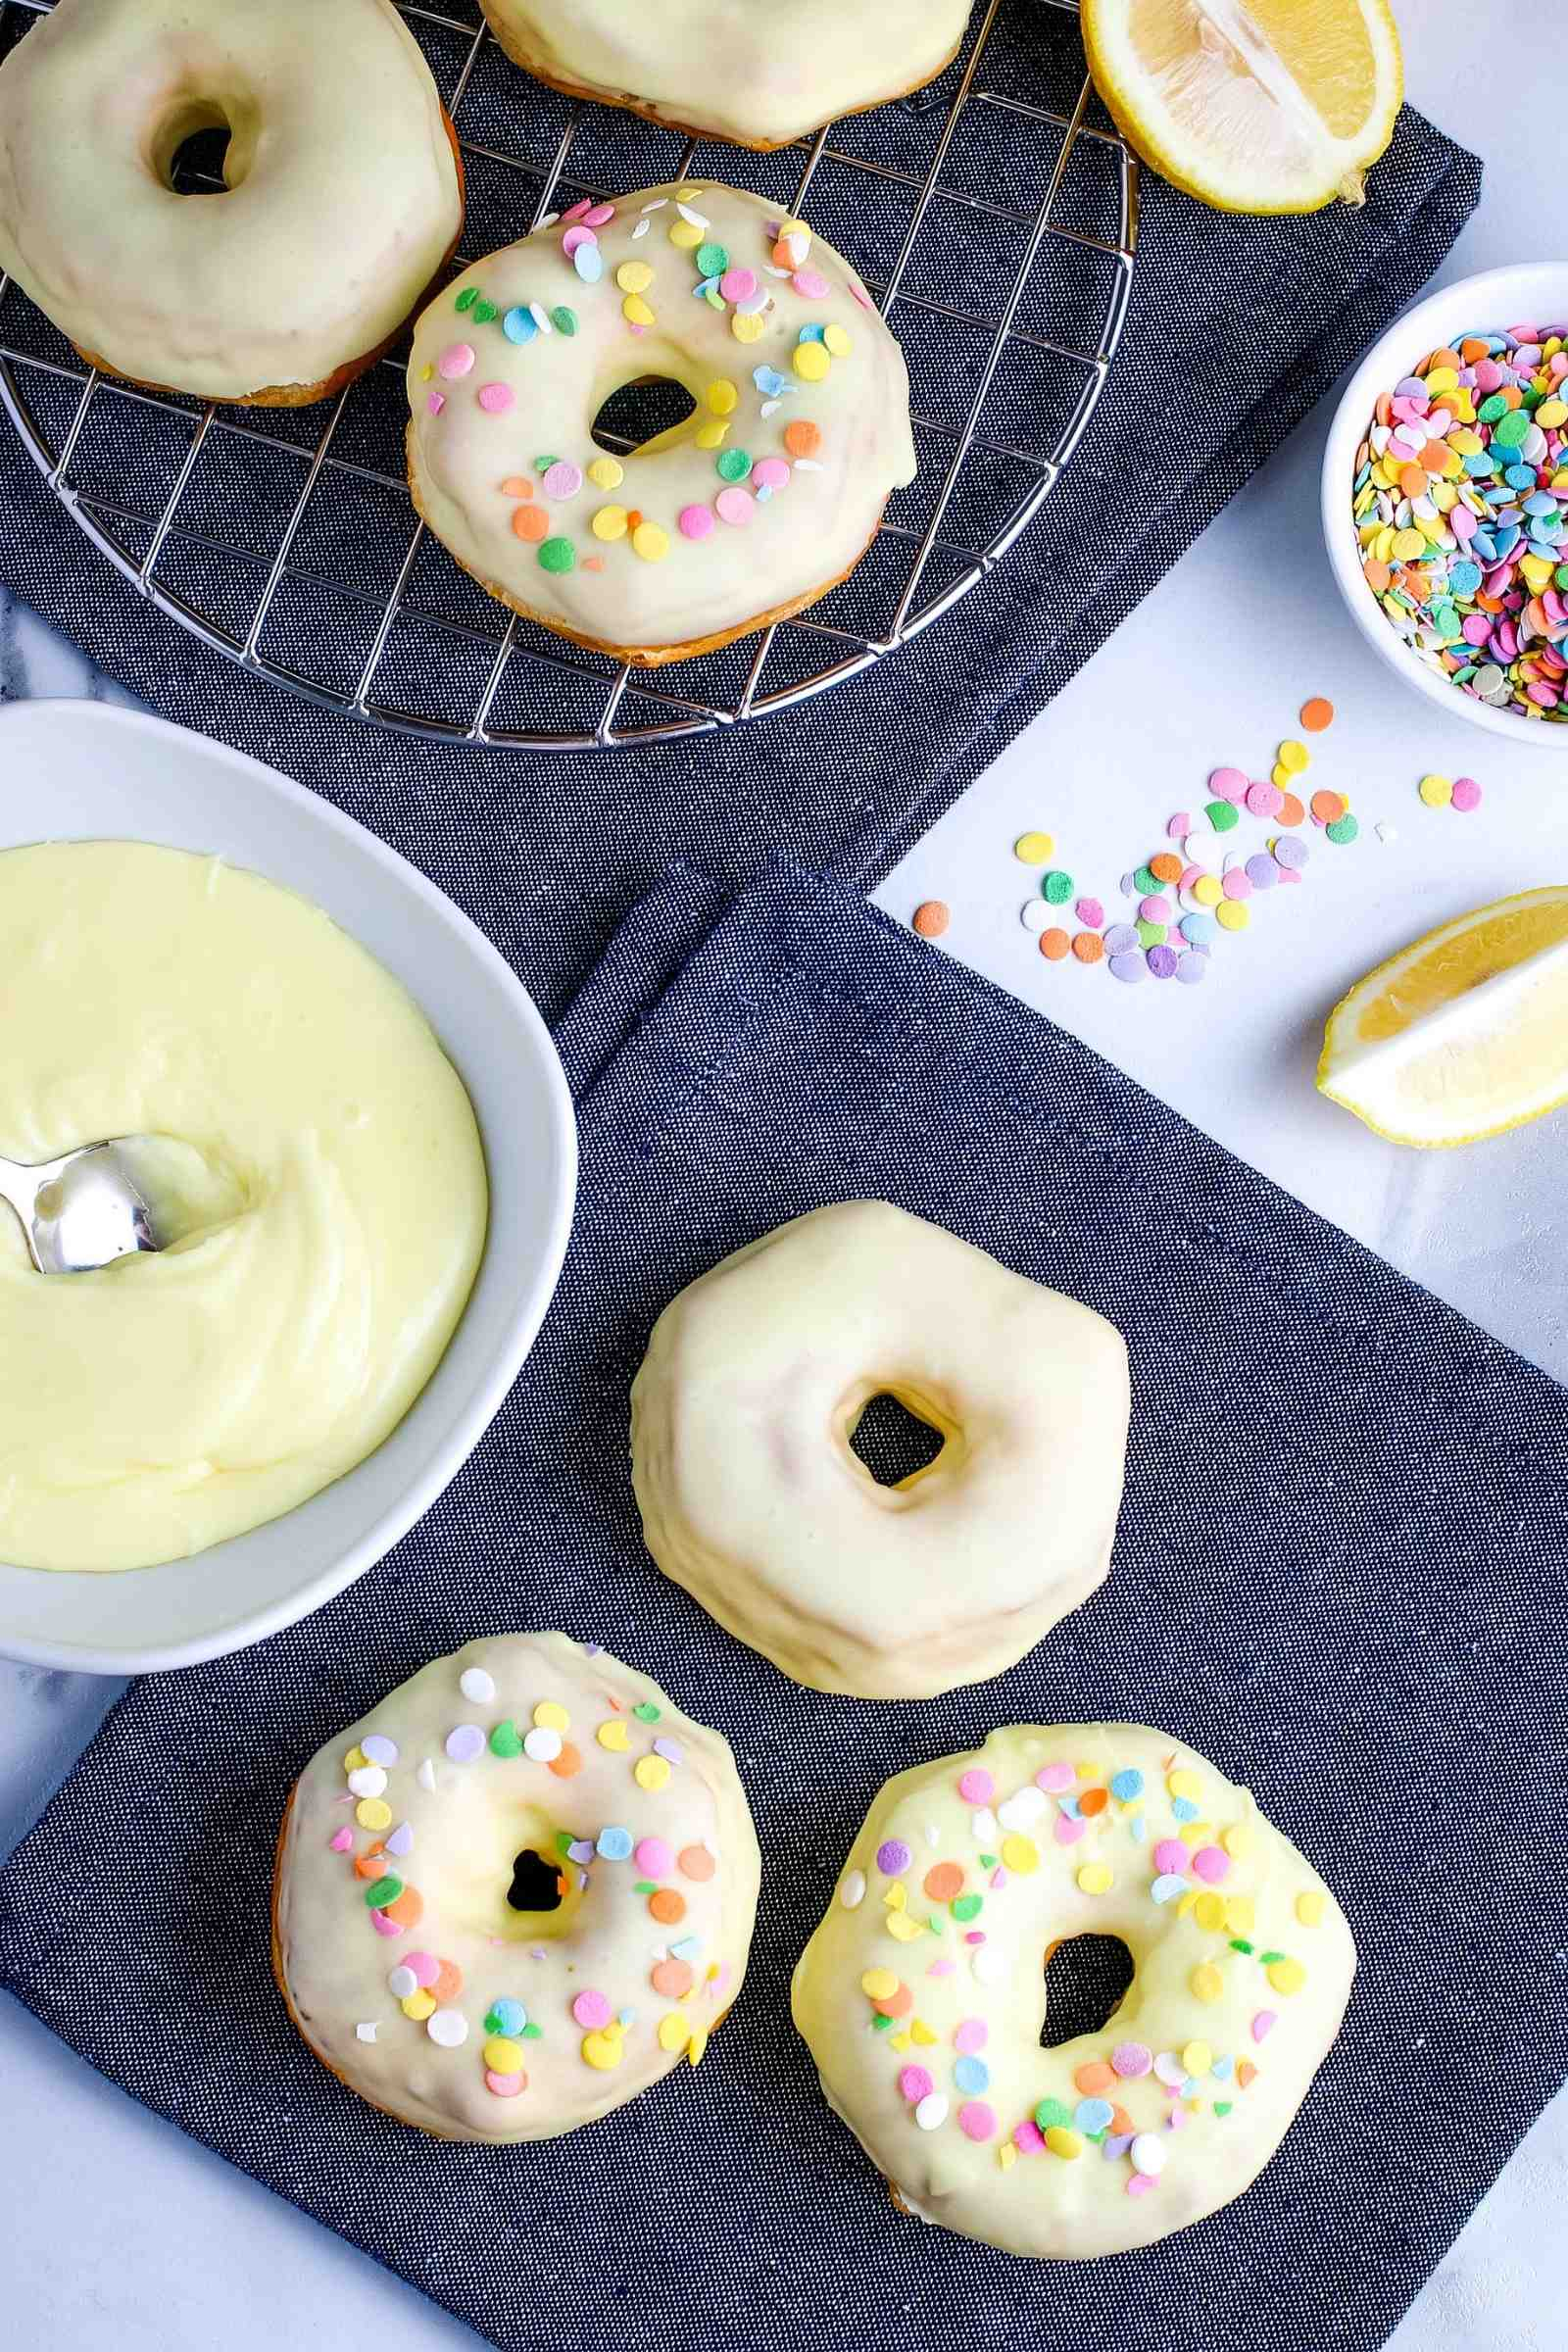 frosted donuts with sprinkles on a black napkin with bowls of frosting and sprinkles